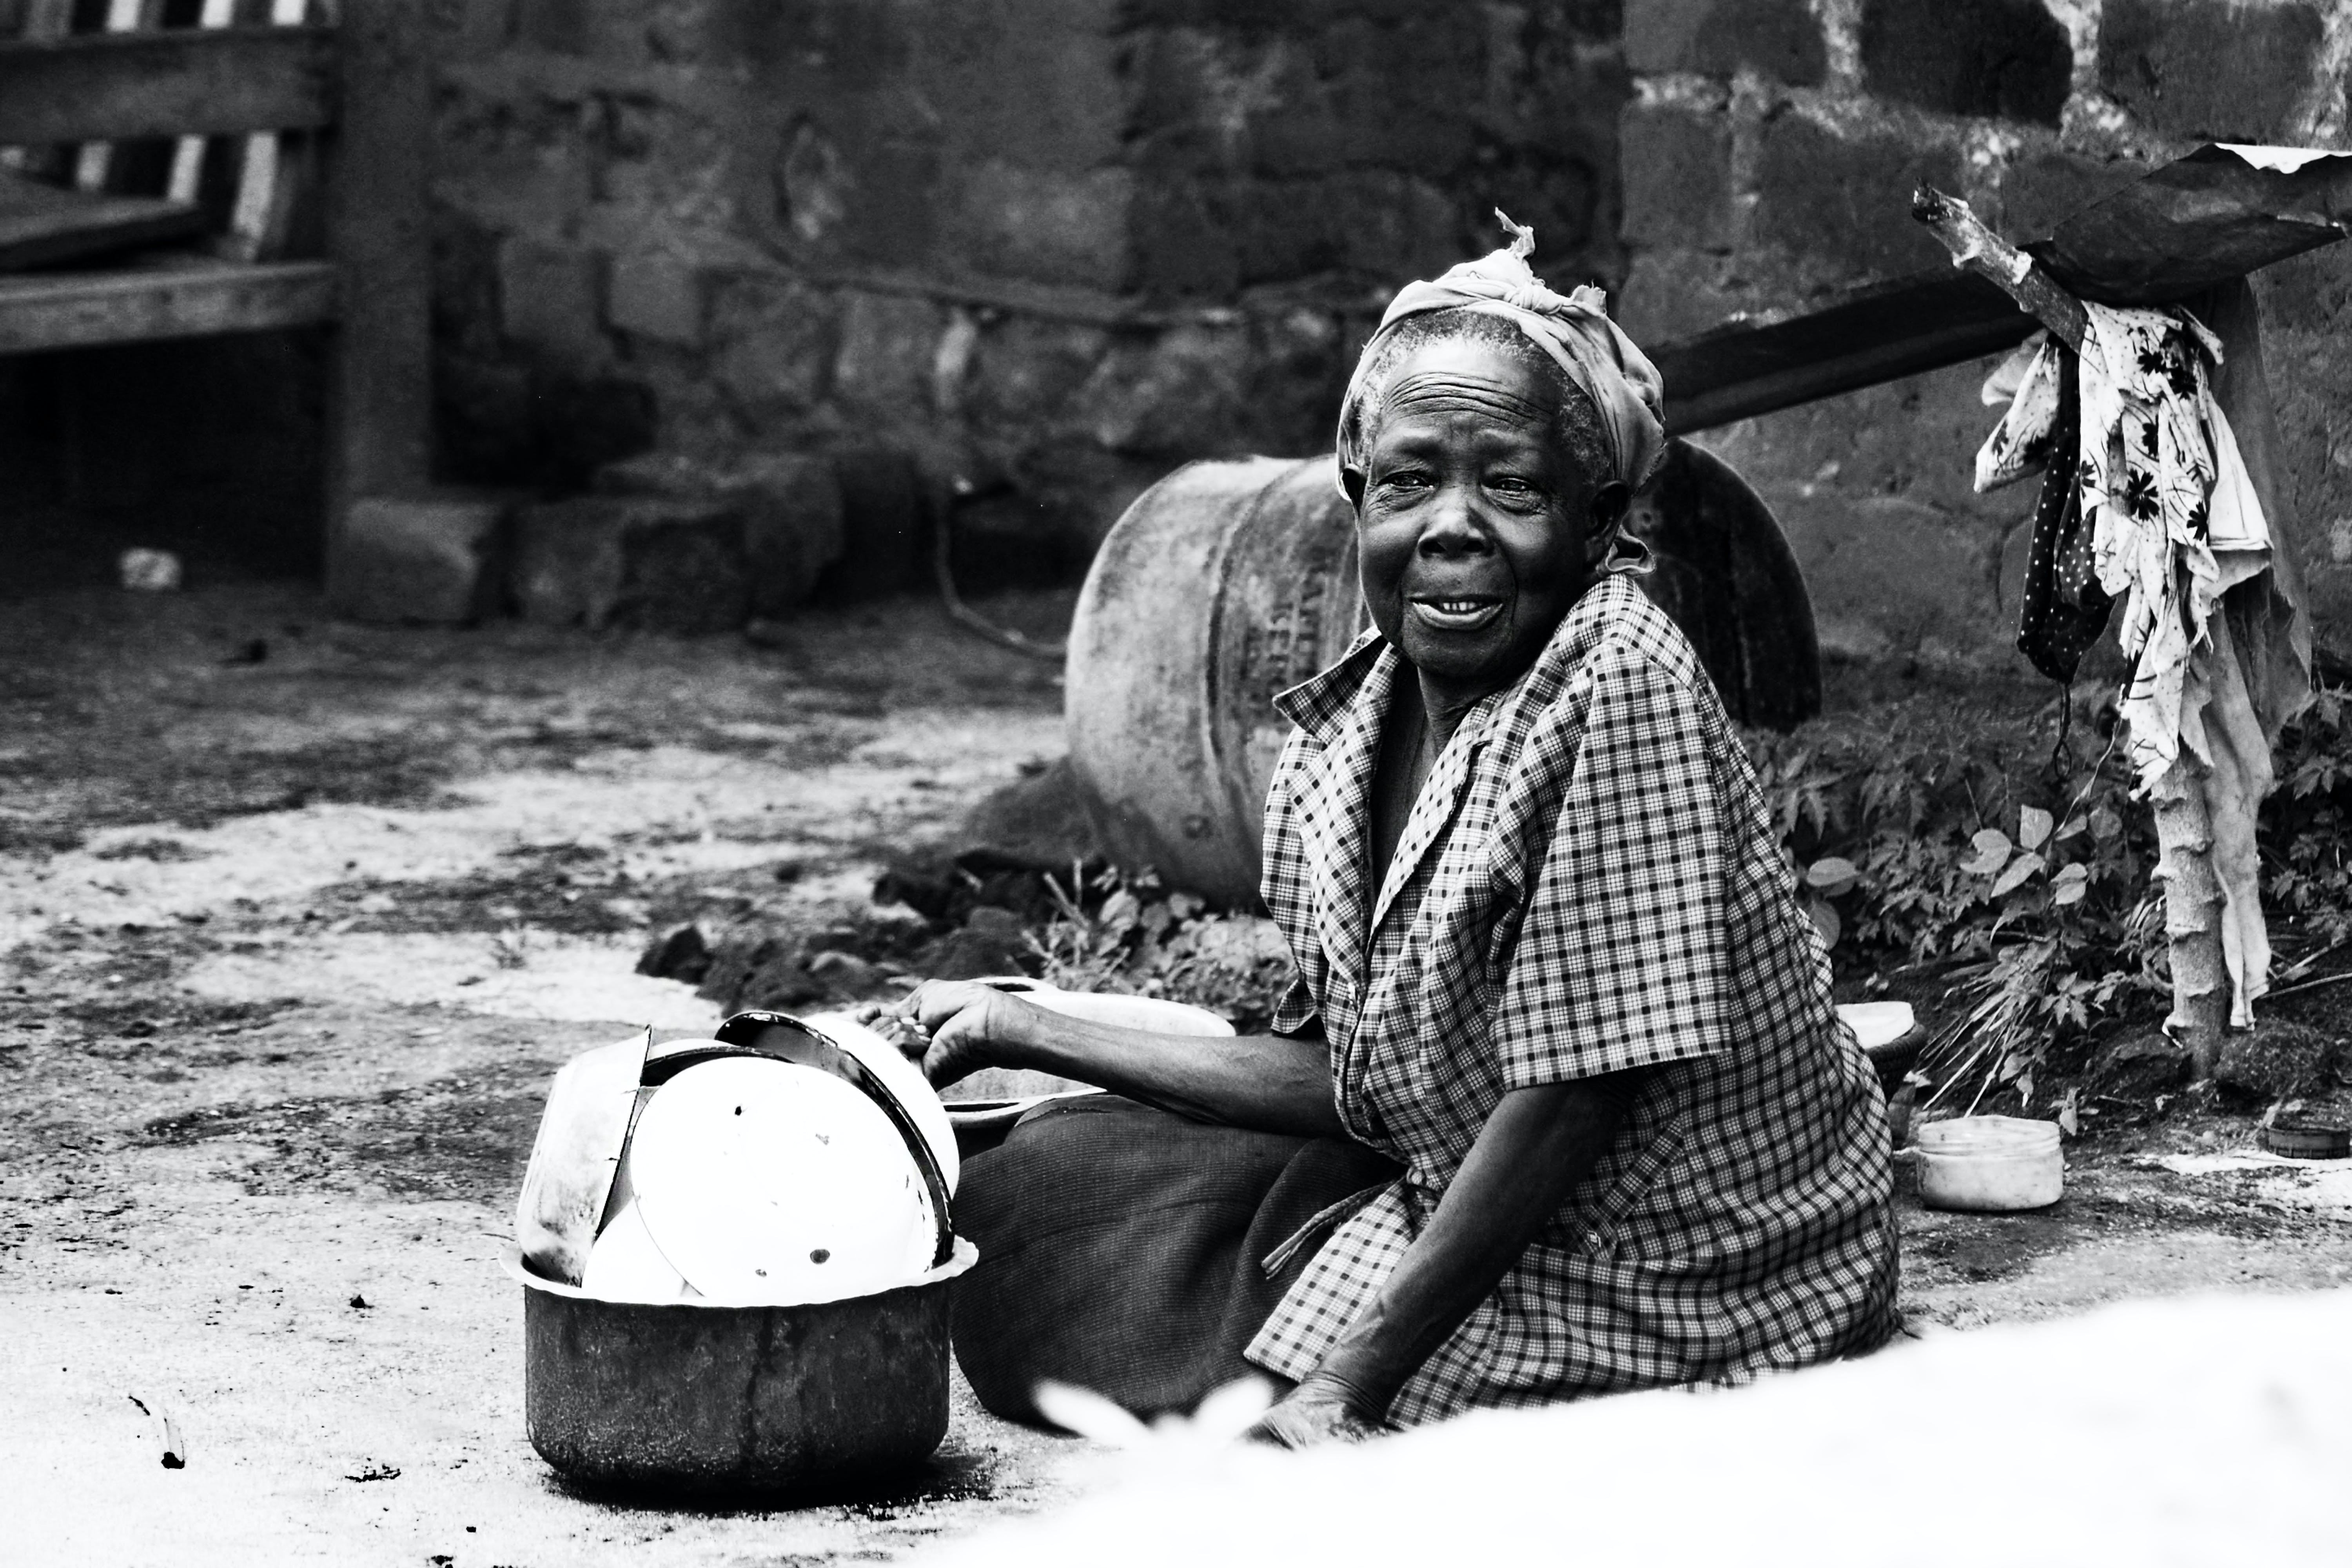 Woman Sitting on Soil Beside Cooking Pot